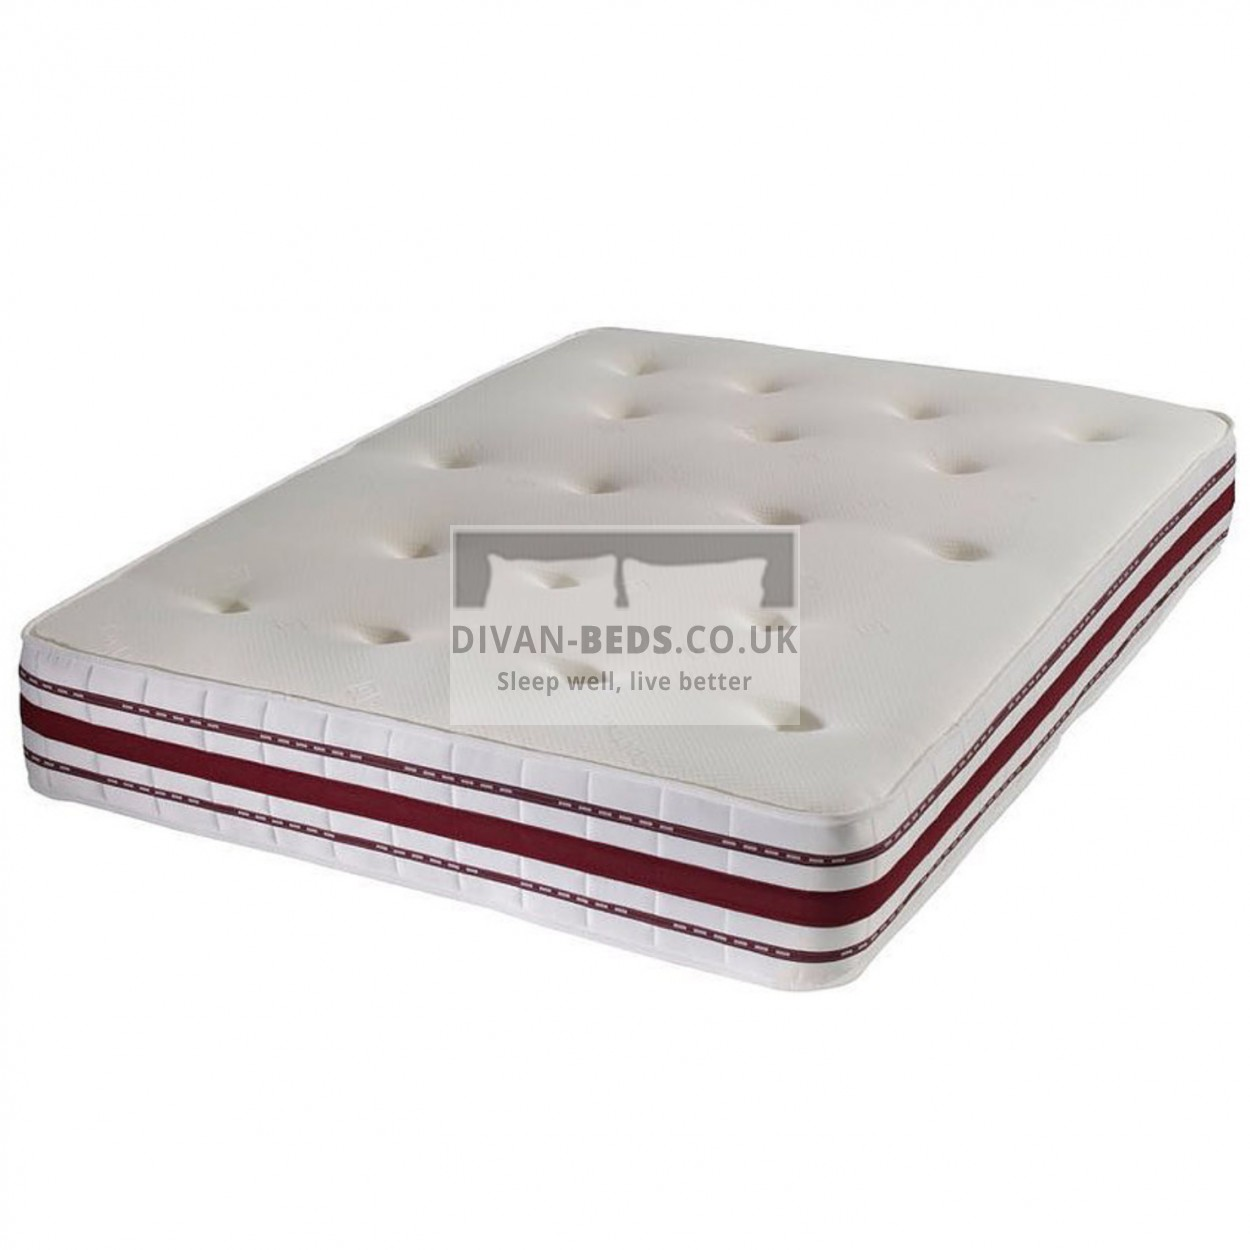 pocket spring high density memory foam mattress with airflow features